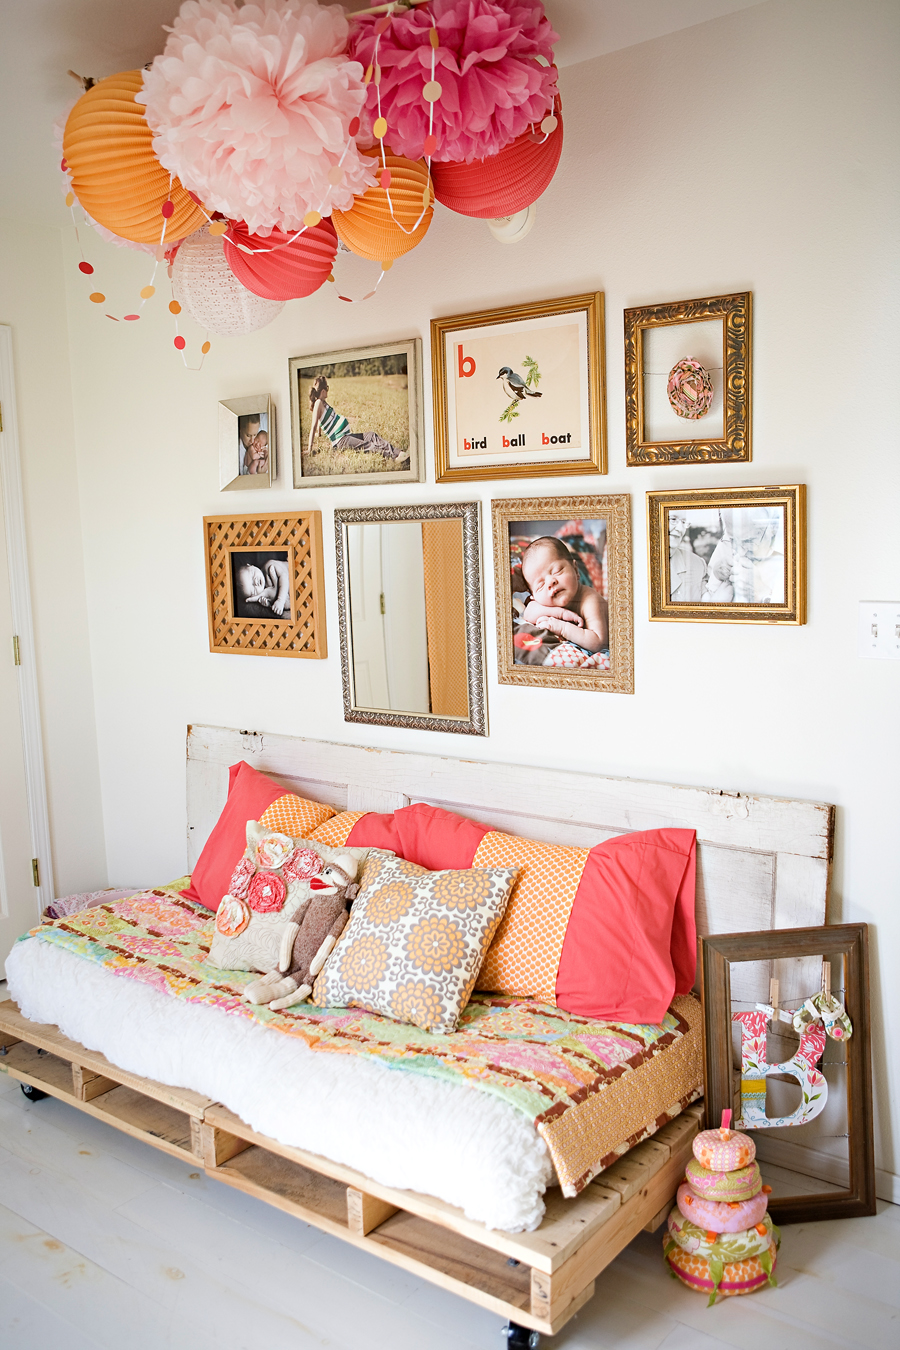 Simple items like inexpensive paper lanterns, garland and even reclaimed pallets and a door look fun, bohemian and eclectic under a gallery wall of fun frames.